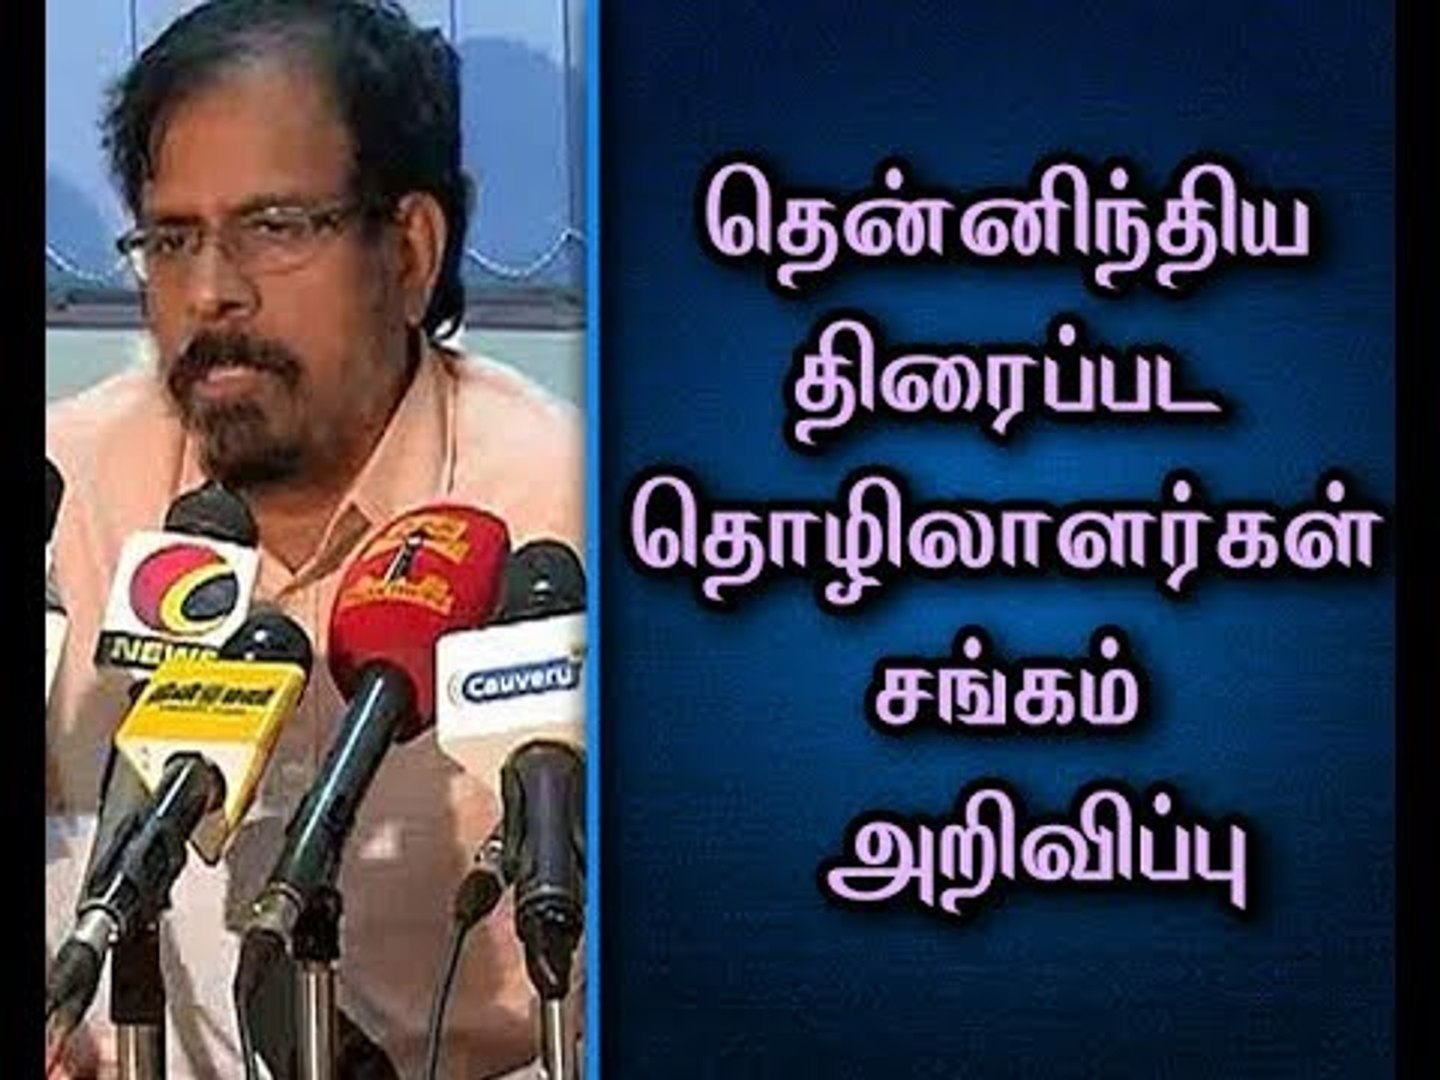 From August 1 will do Strike Protest, if Wage agreement not provided -  R. K. Selvamani